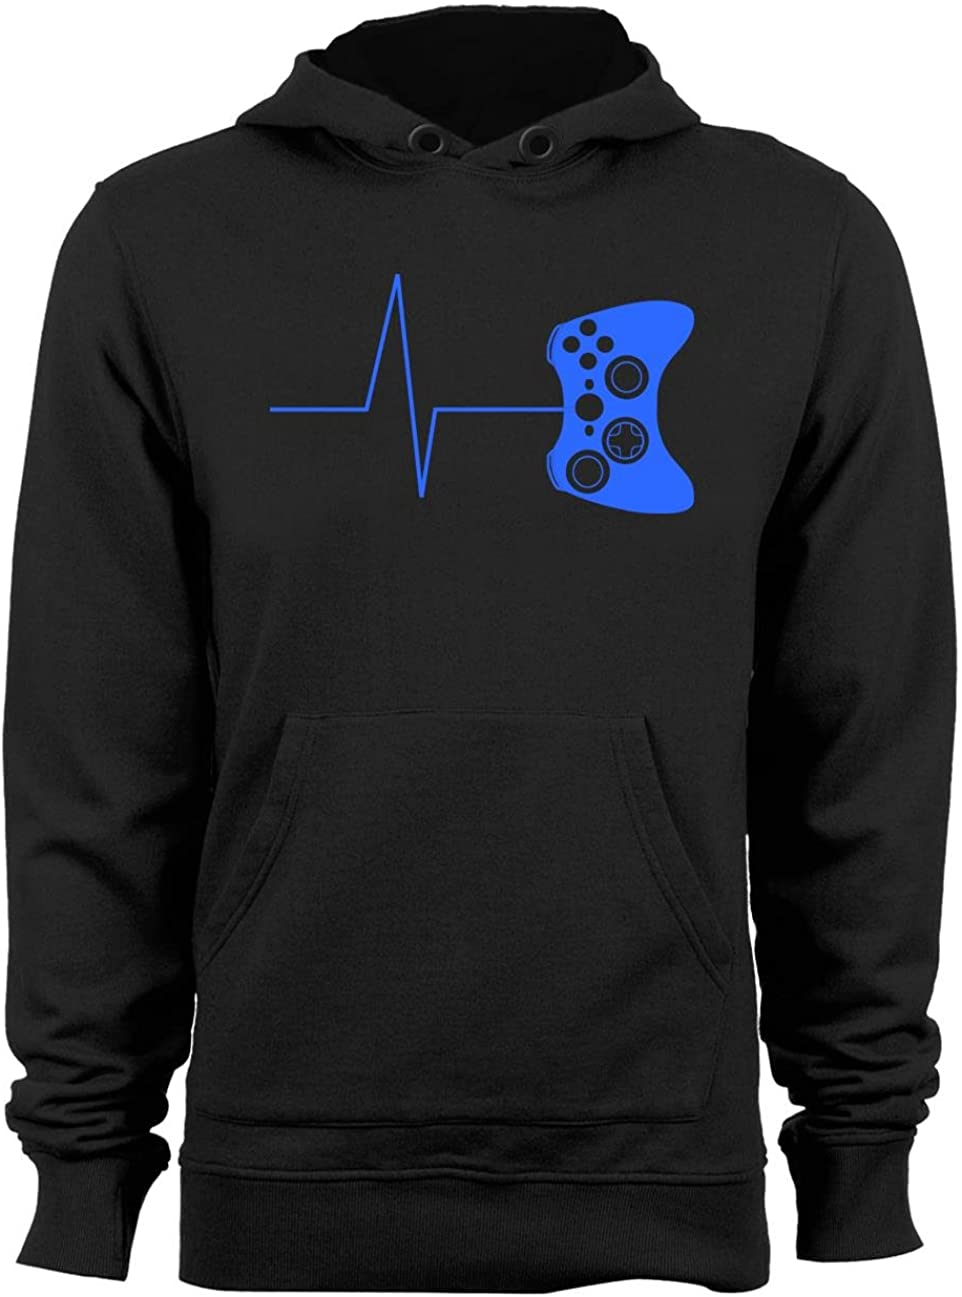 Guerrilla Tees Spasm price Heartbeat of a Gaming Funny Sweatshi NEW before selling Hoodie Gamer